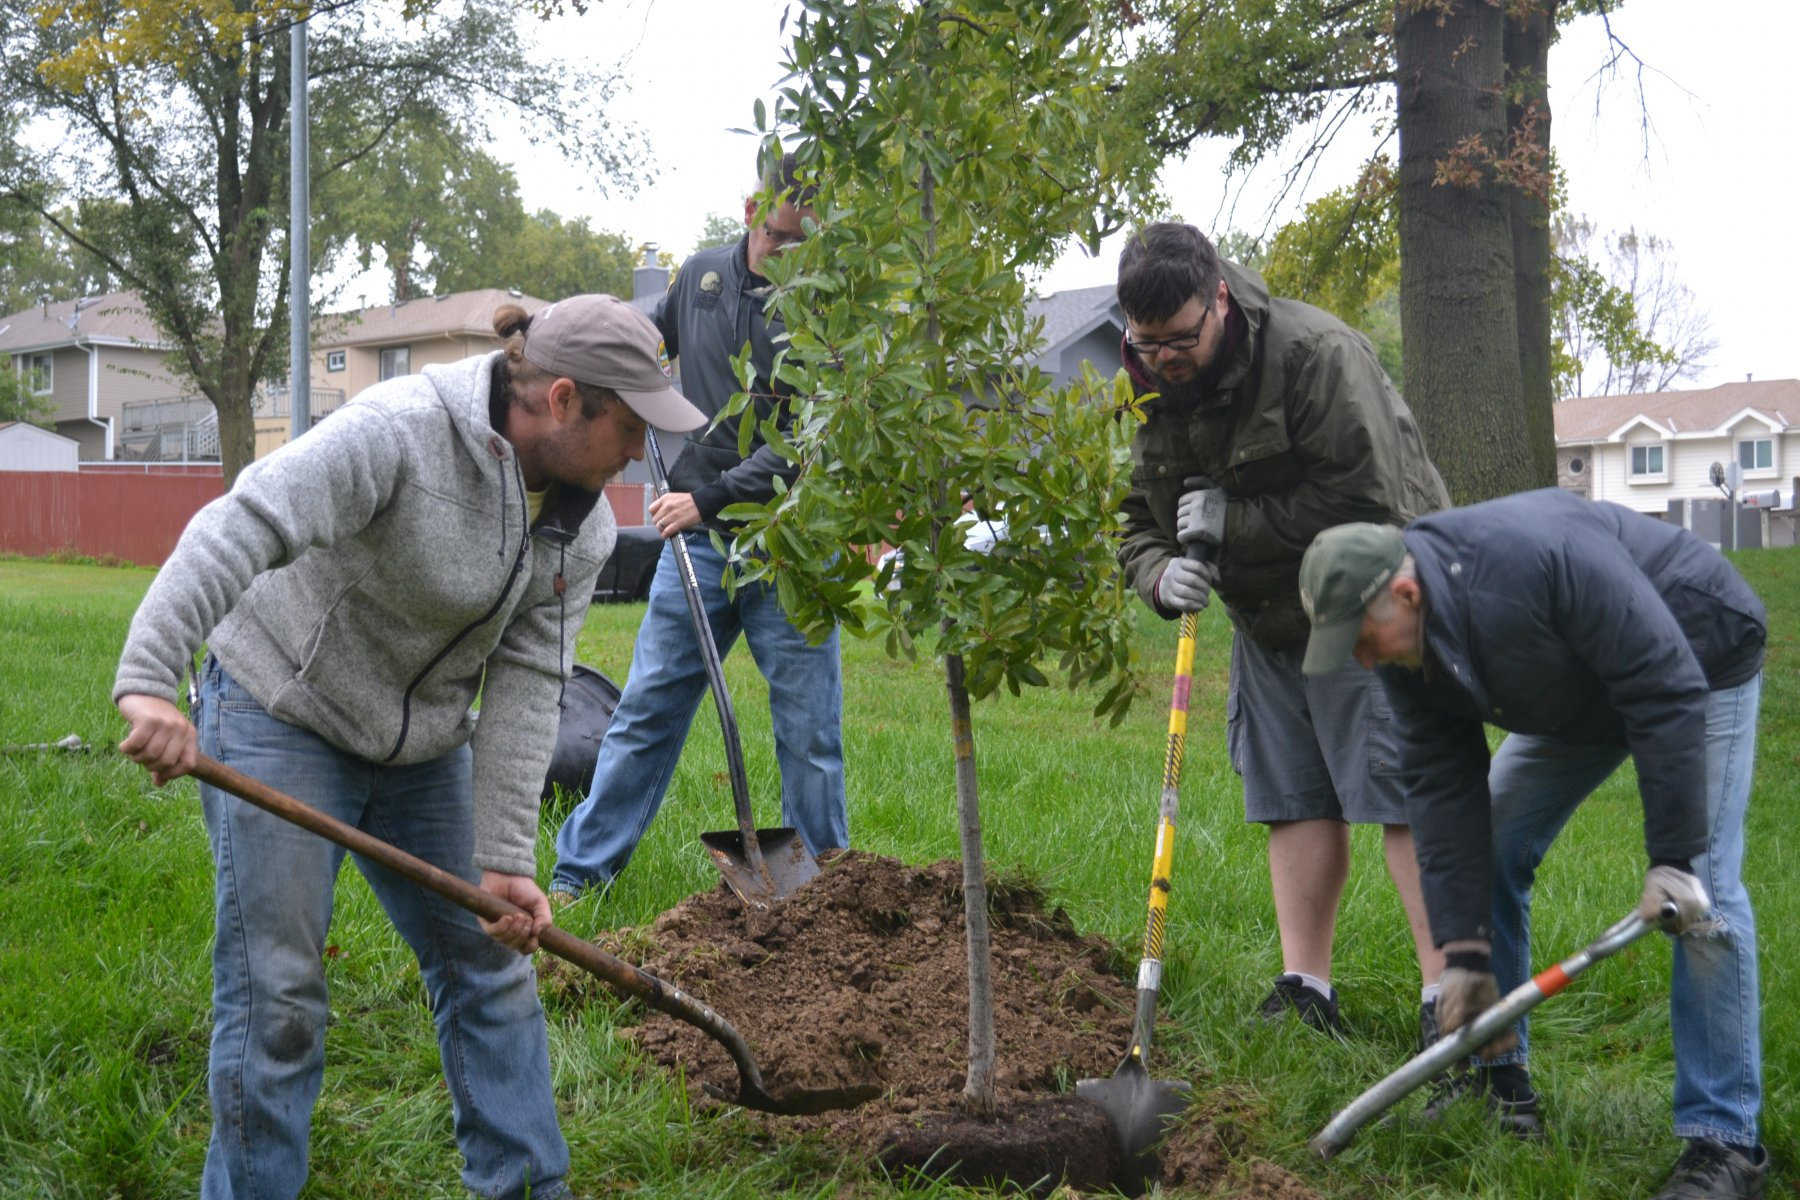 Planting an oak tree in Bellevue's Two Springs Park